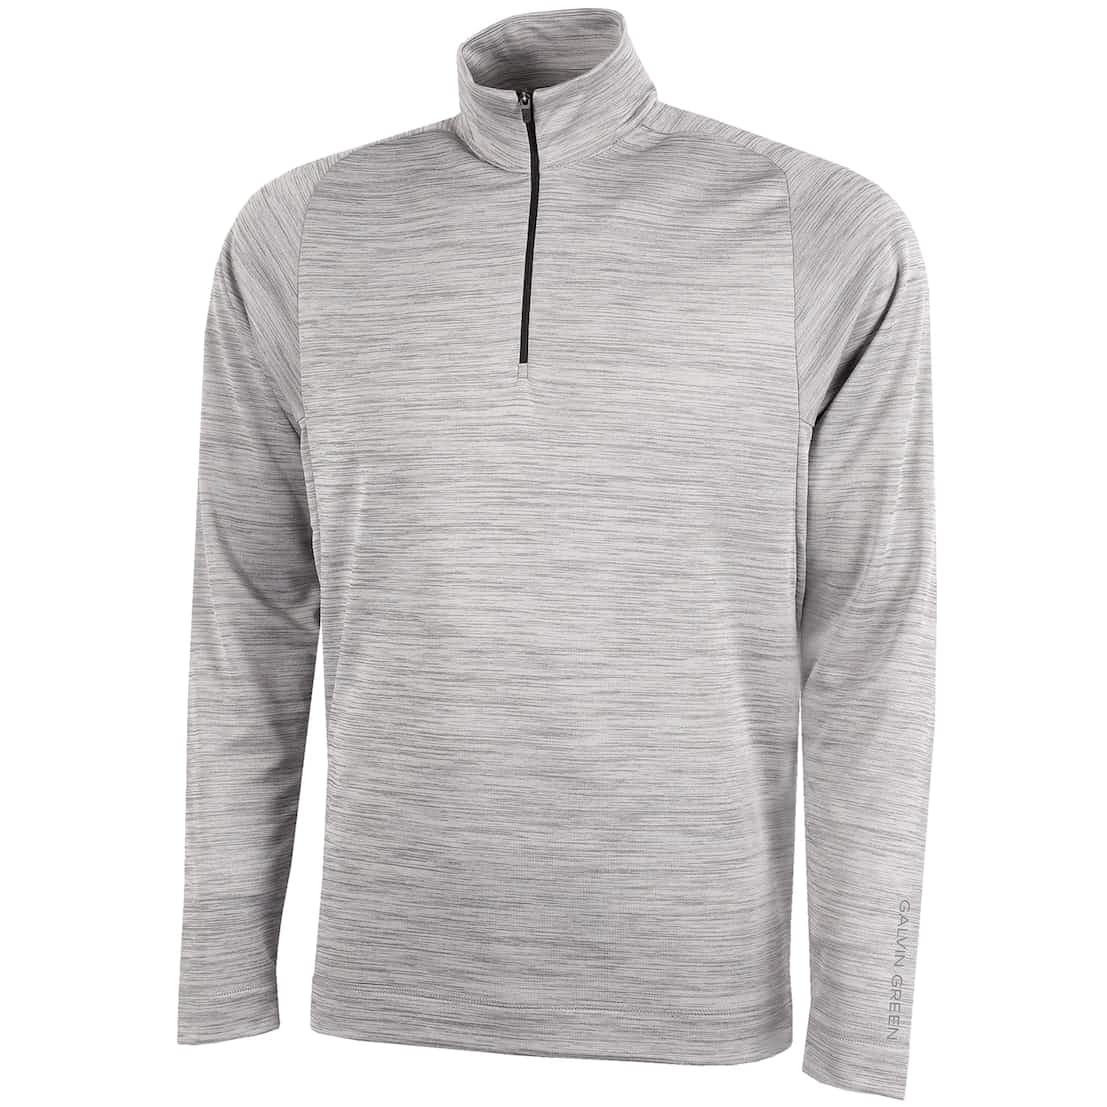 Dixon Insula Half Zip Light Grey - SS20